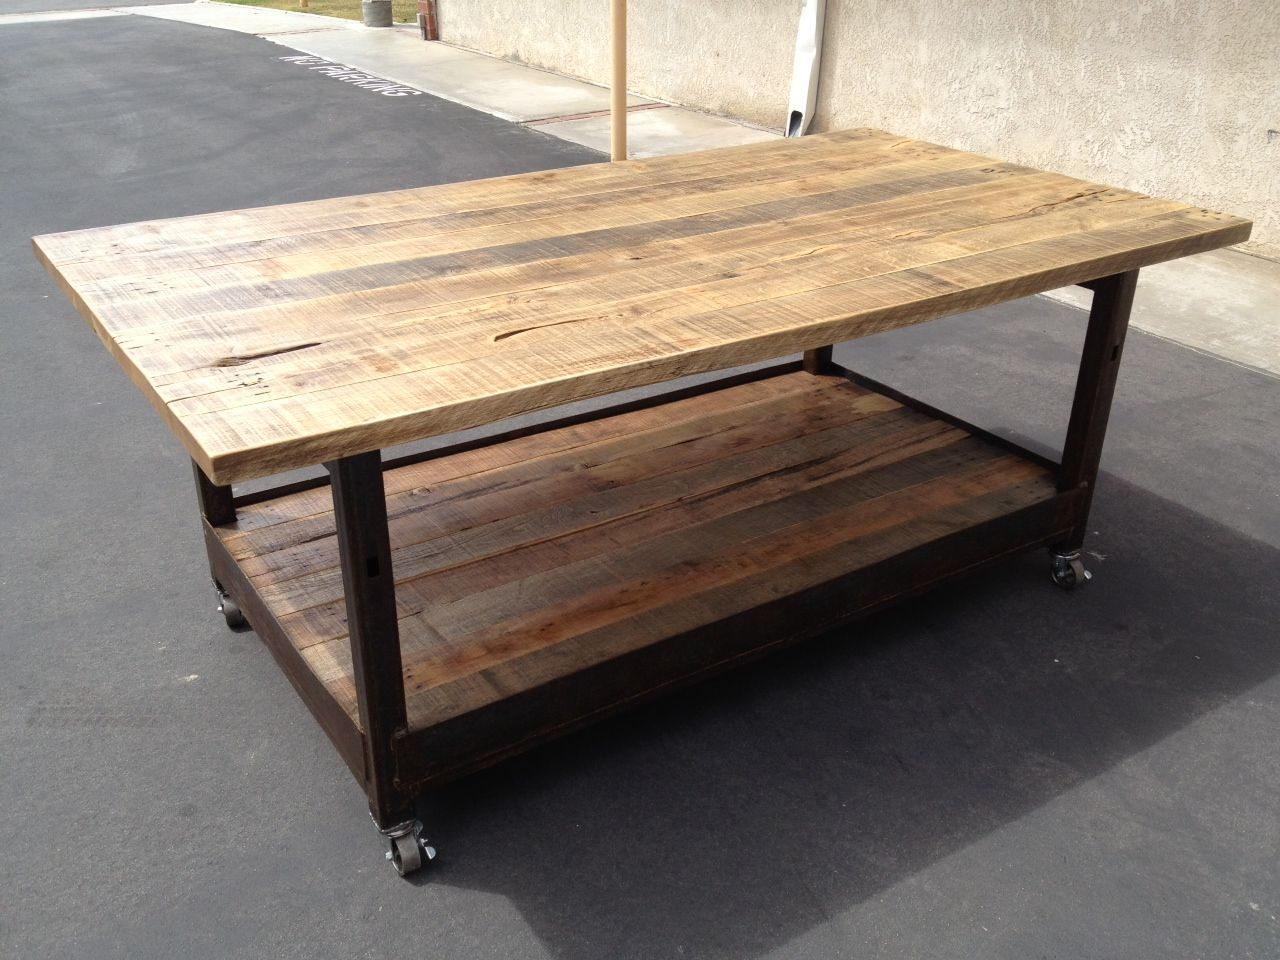 kitchen islands on casters ] - 27 5 in w x 34 5 in h natural